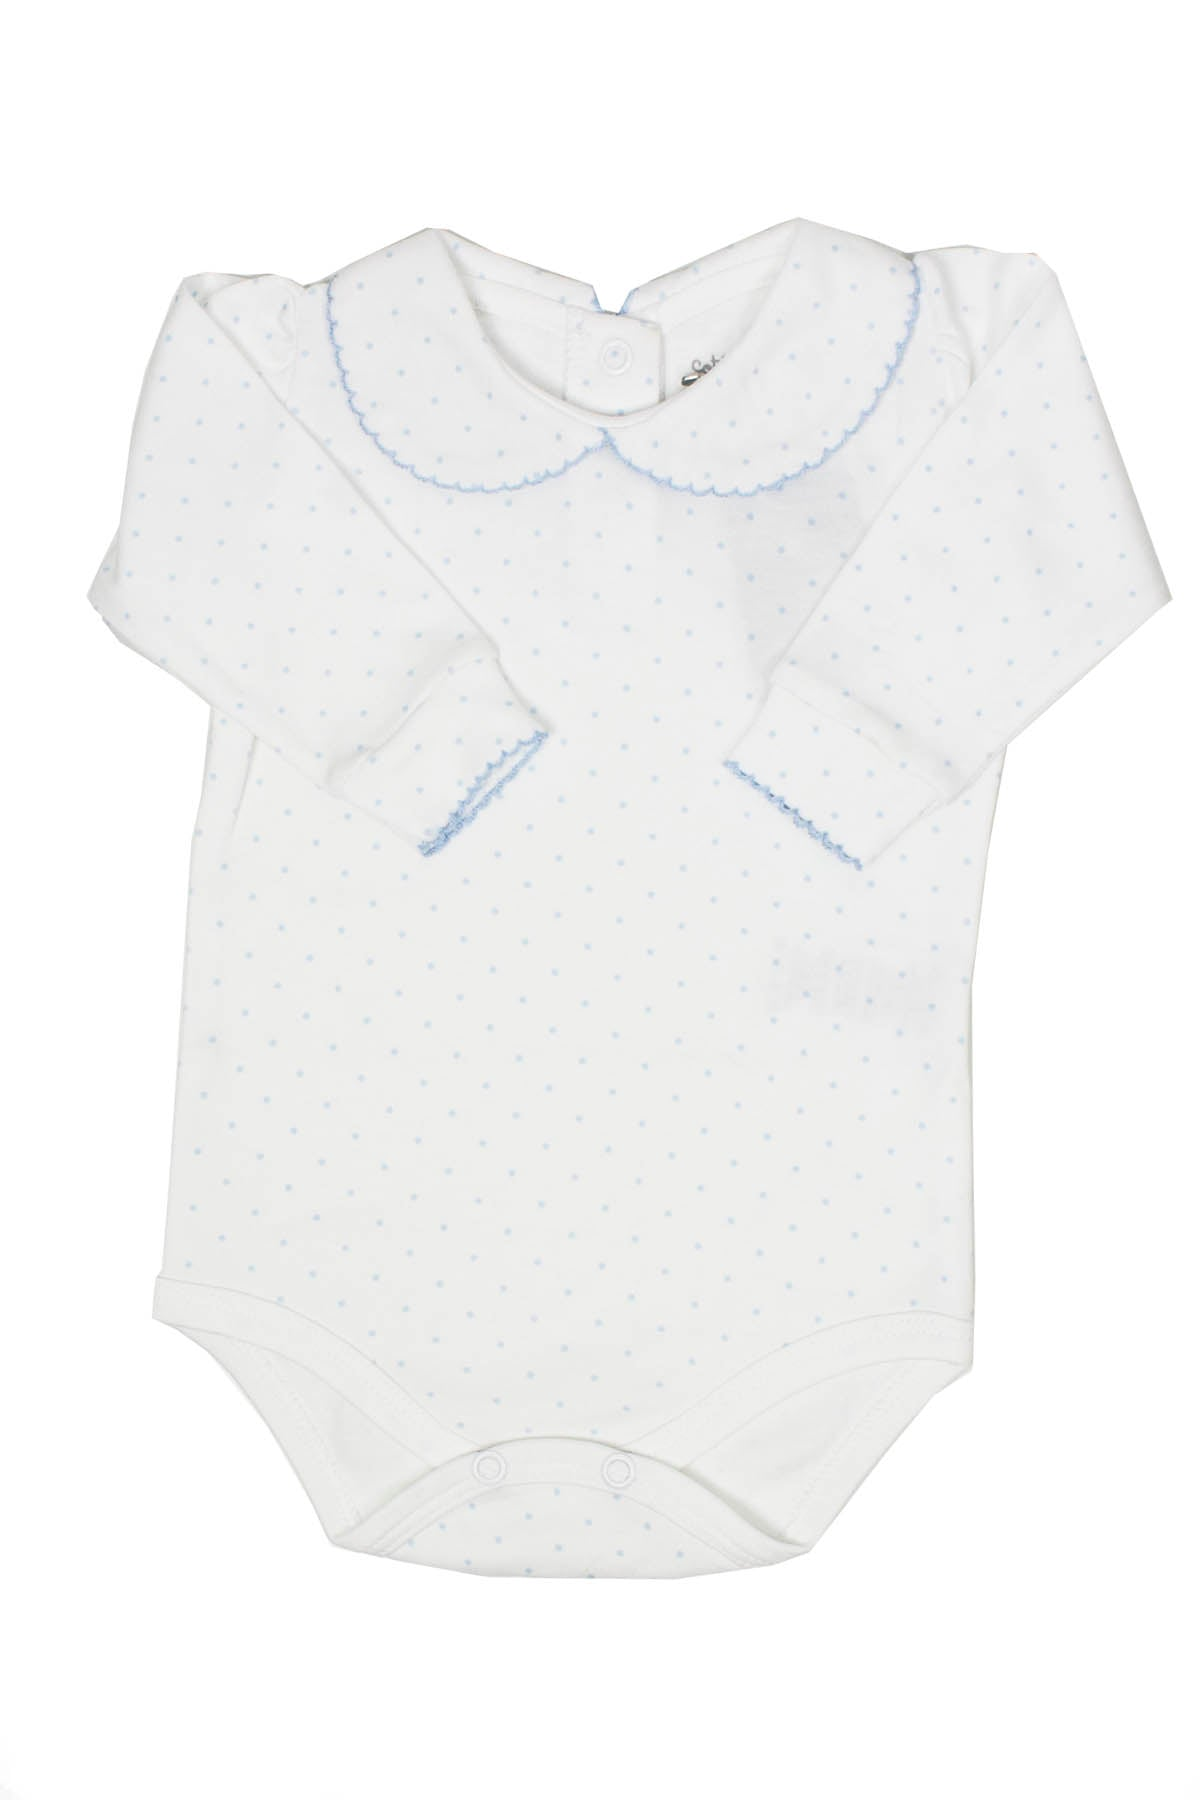 Pima Cotton Body little blue dots with neck